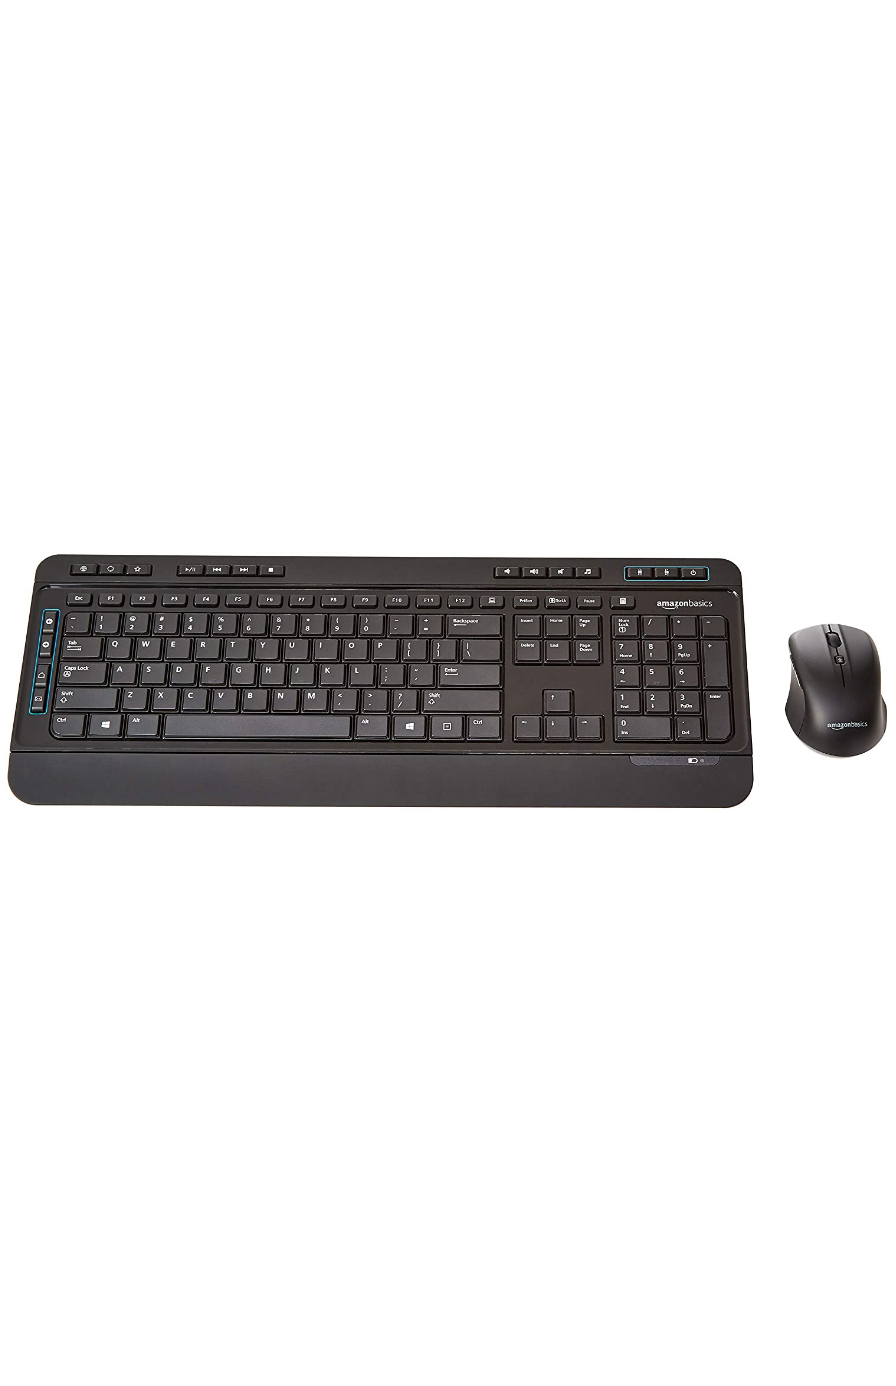 Wireless Computer Mouse and Keyboard Combo